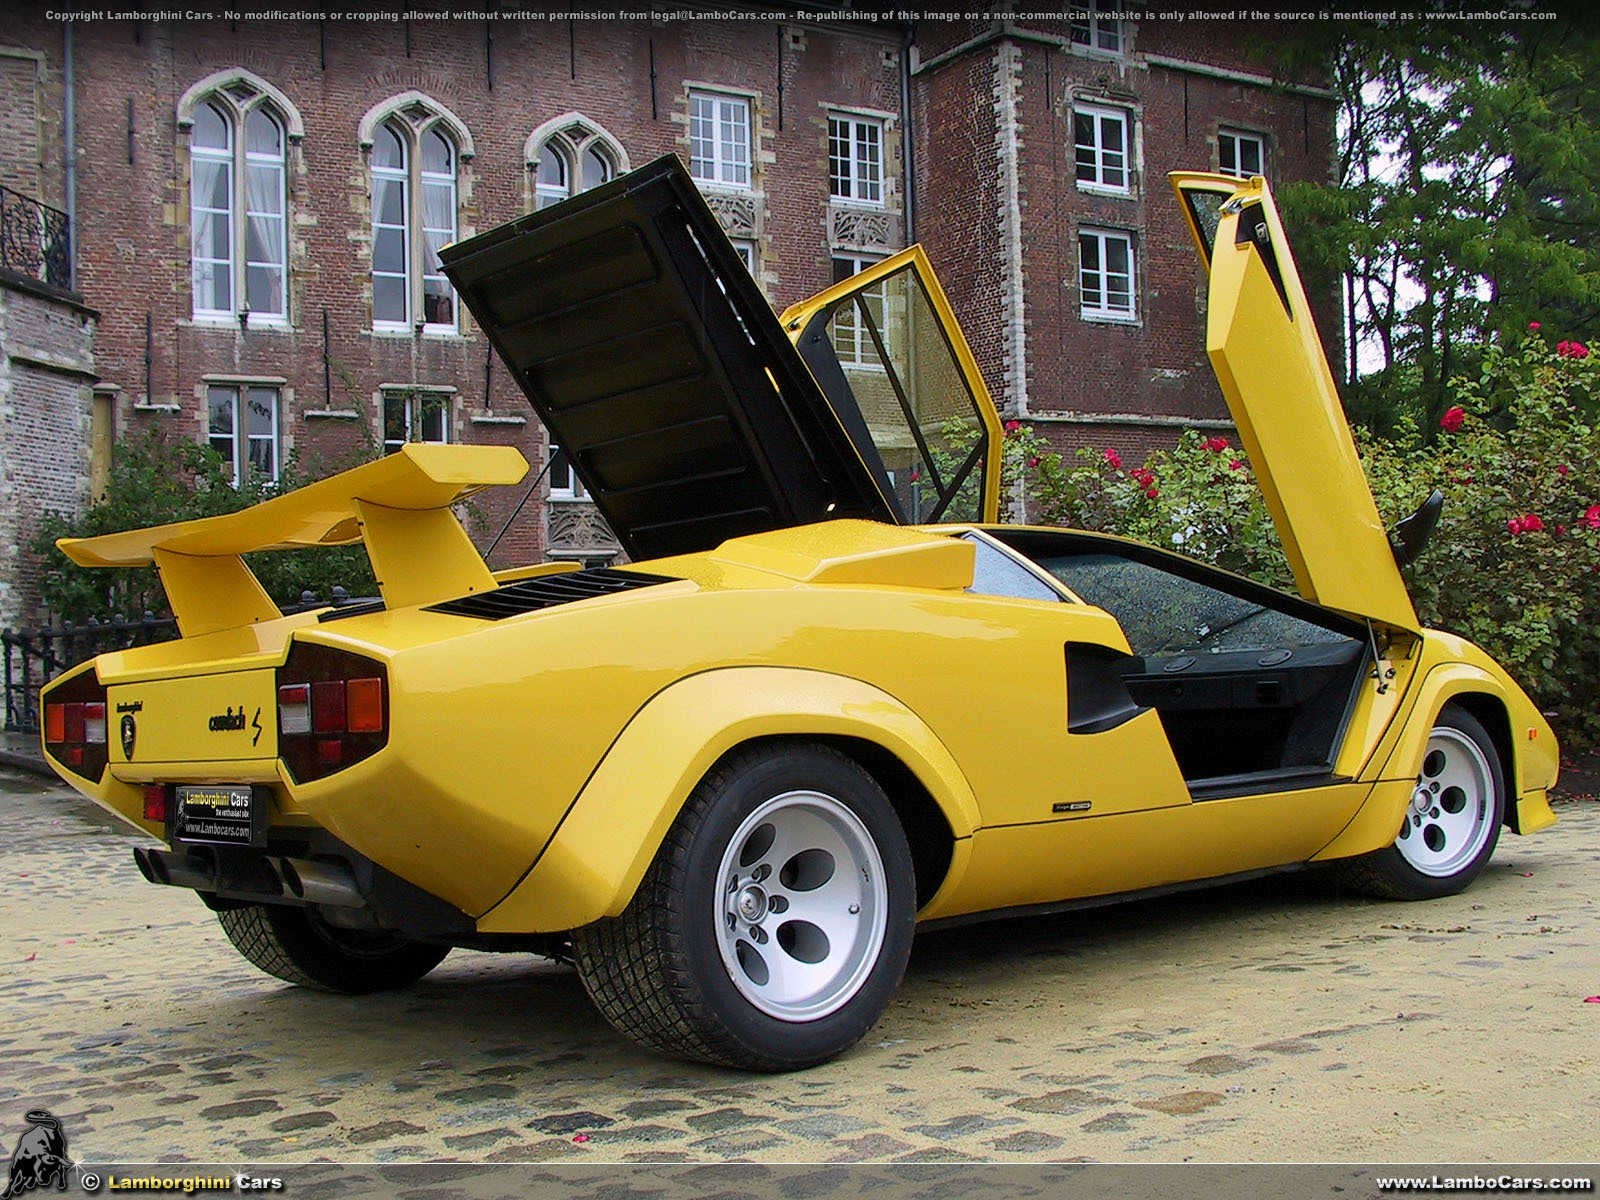 mecha image of the day archives real life a yellow lamborghini countach lp400s 2 of 2. Black Bedroom Furniture Sets. Home Design Ideas